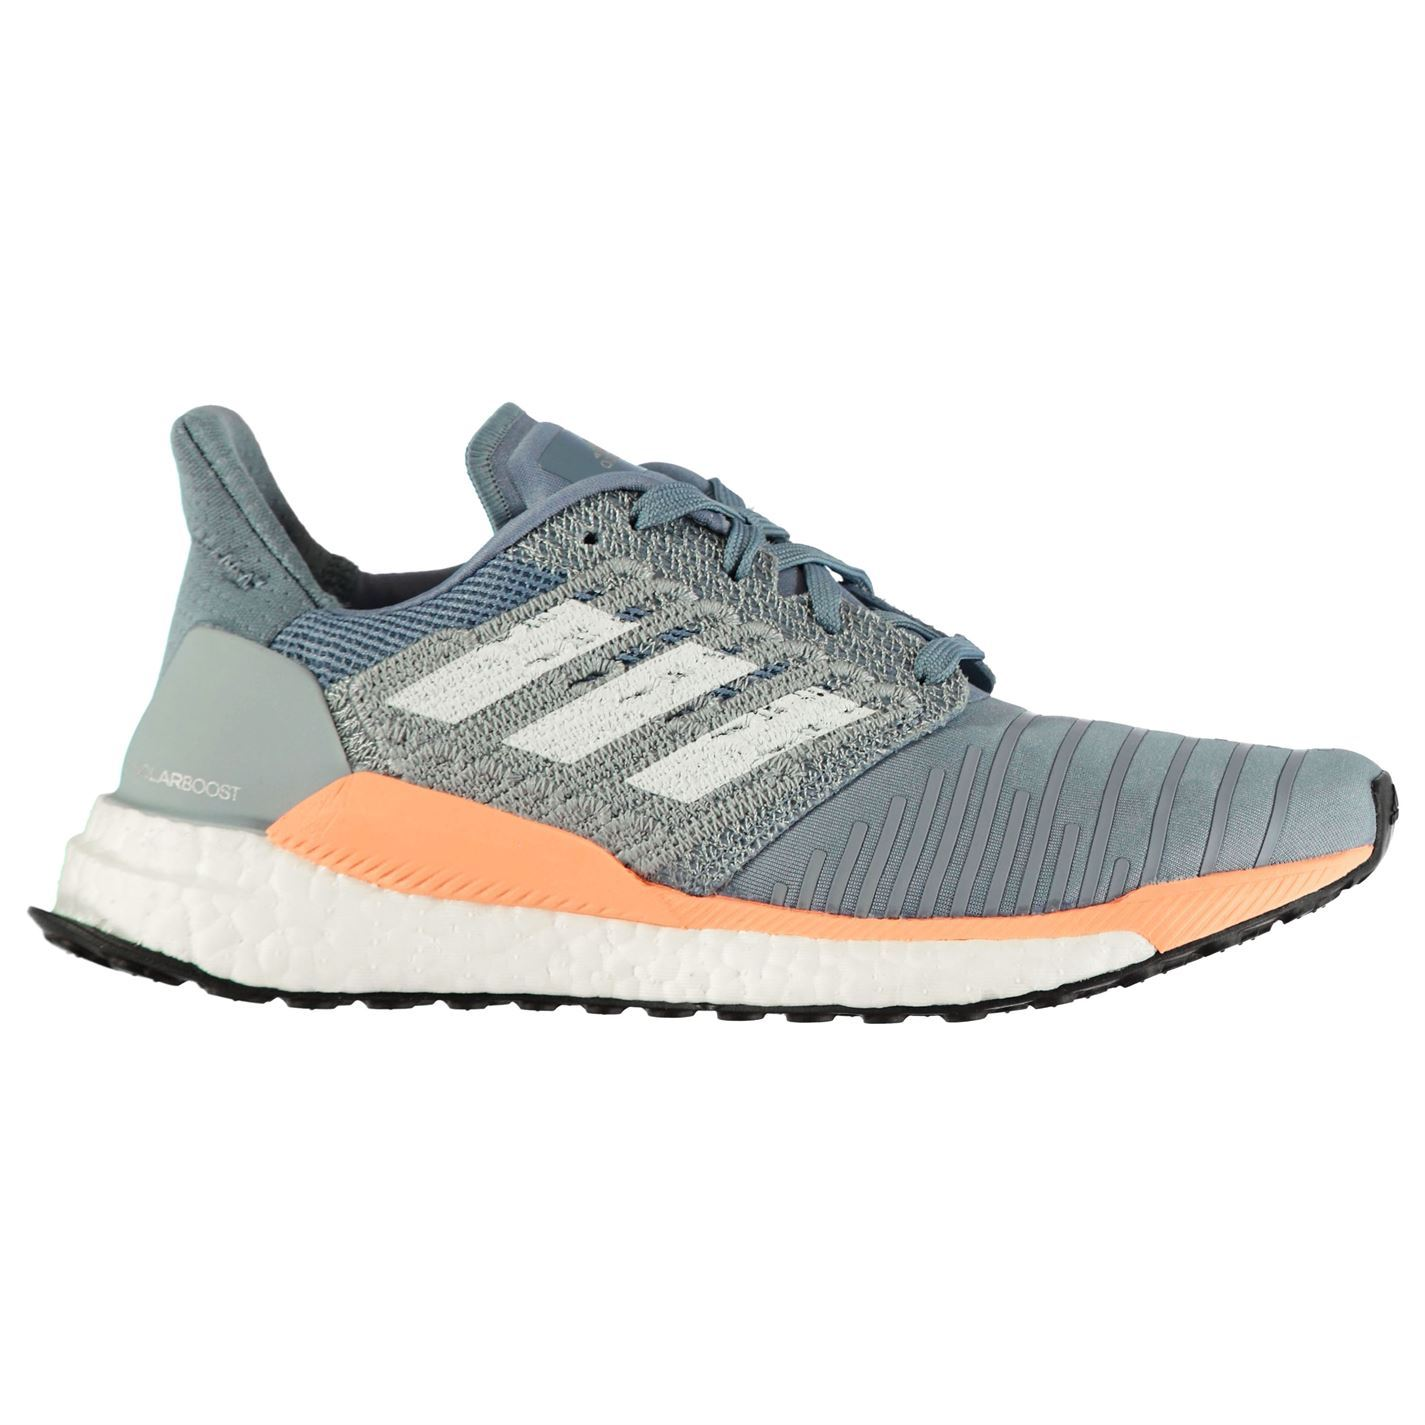 0bed7cd11e23 adidas Solarboost Running Shoes Ladies Road Lightweight Stretch